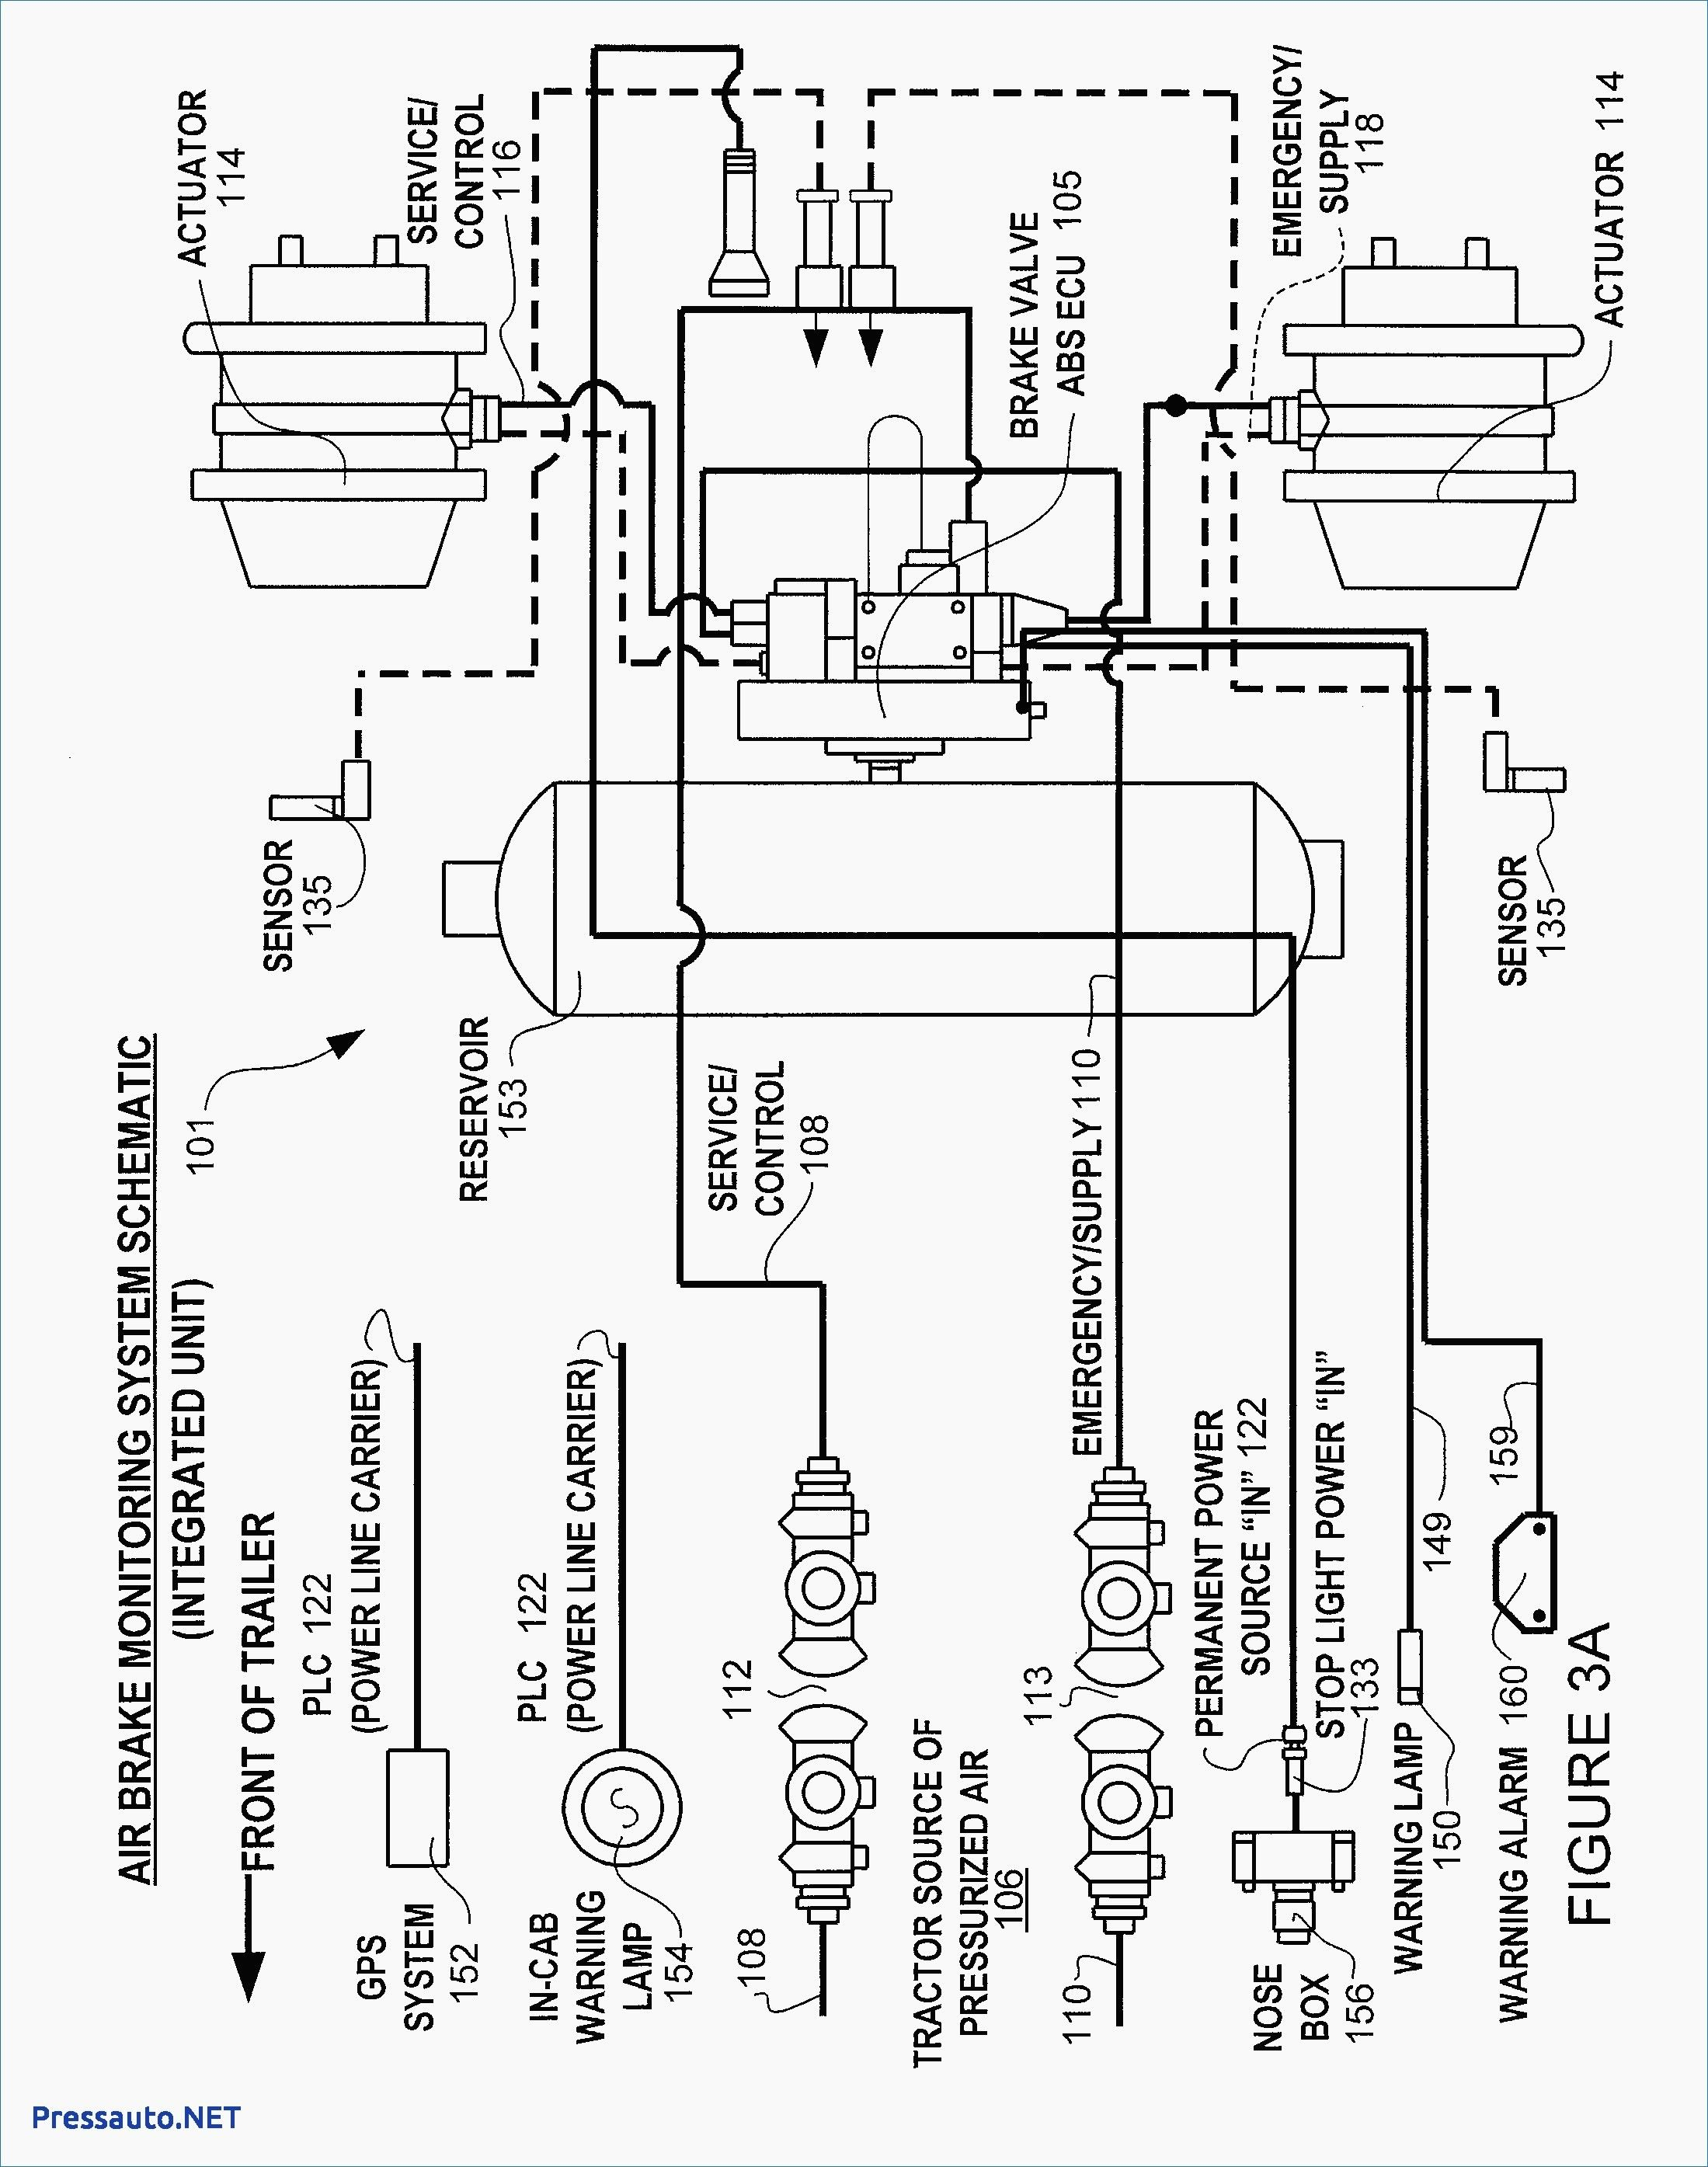 Unique Wiring Diagram Worcester Bosch Diagrams